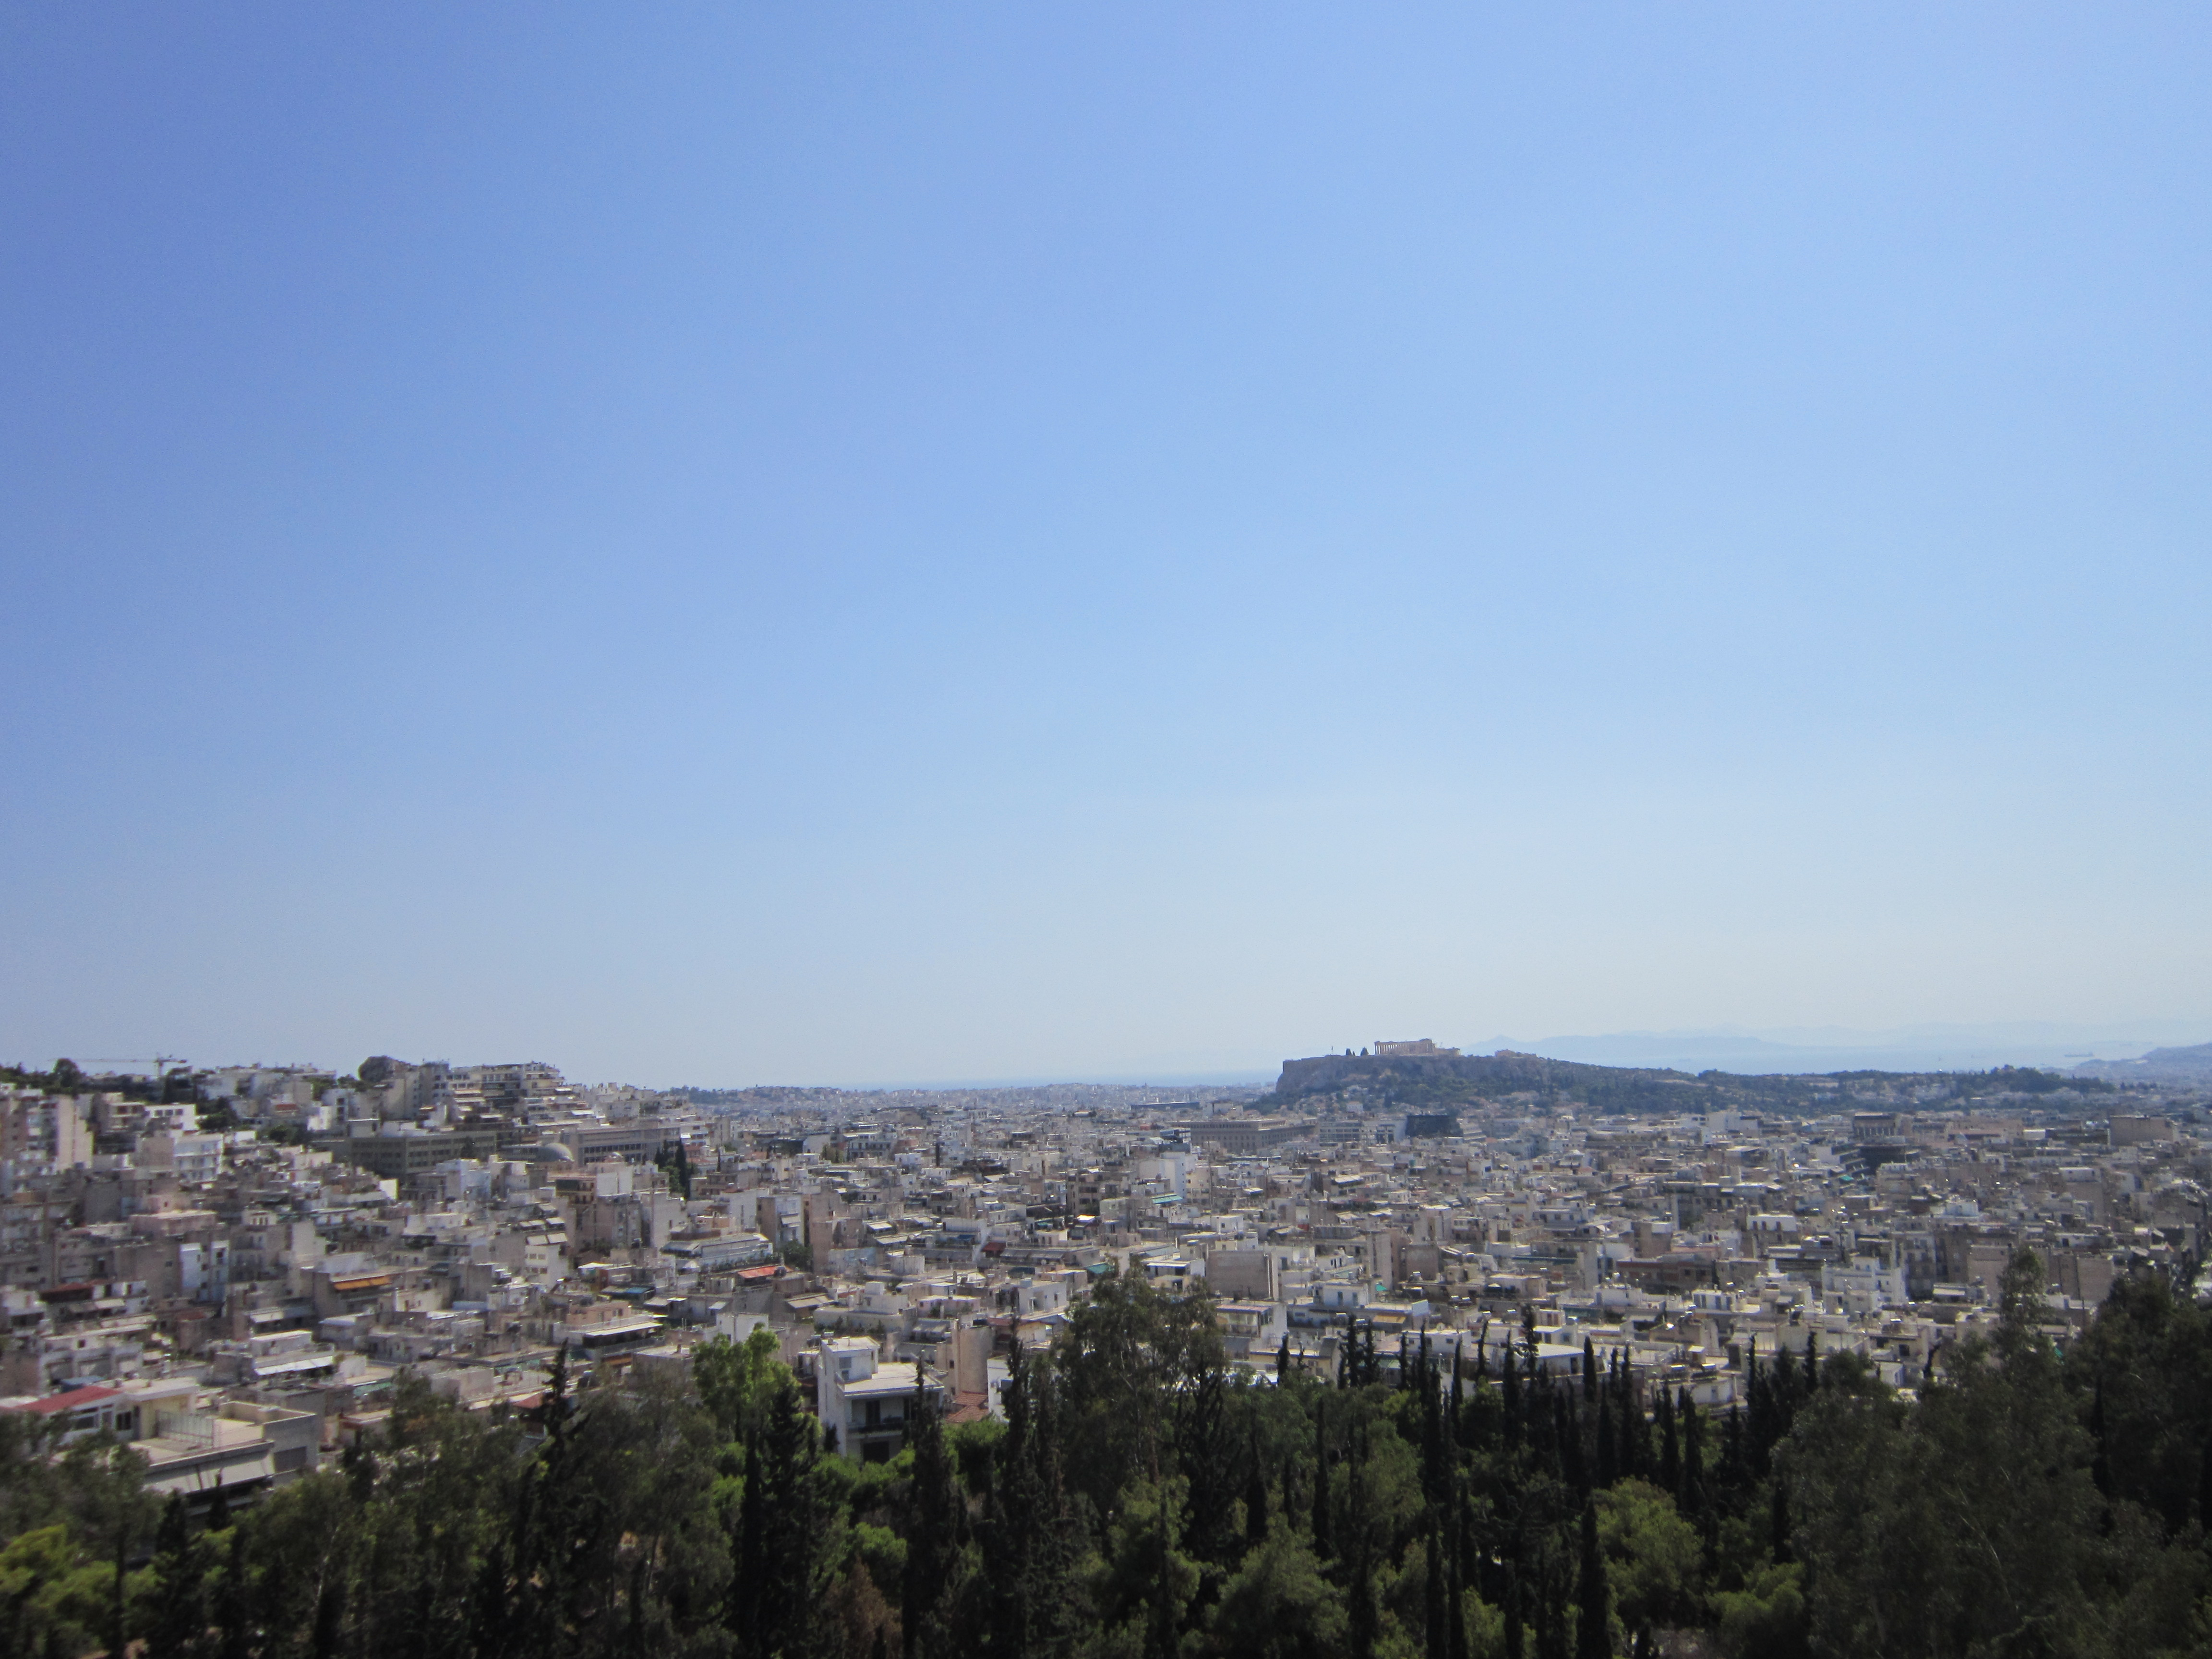 A view over the city of Athens with bright blue skyses above